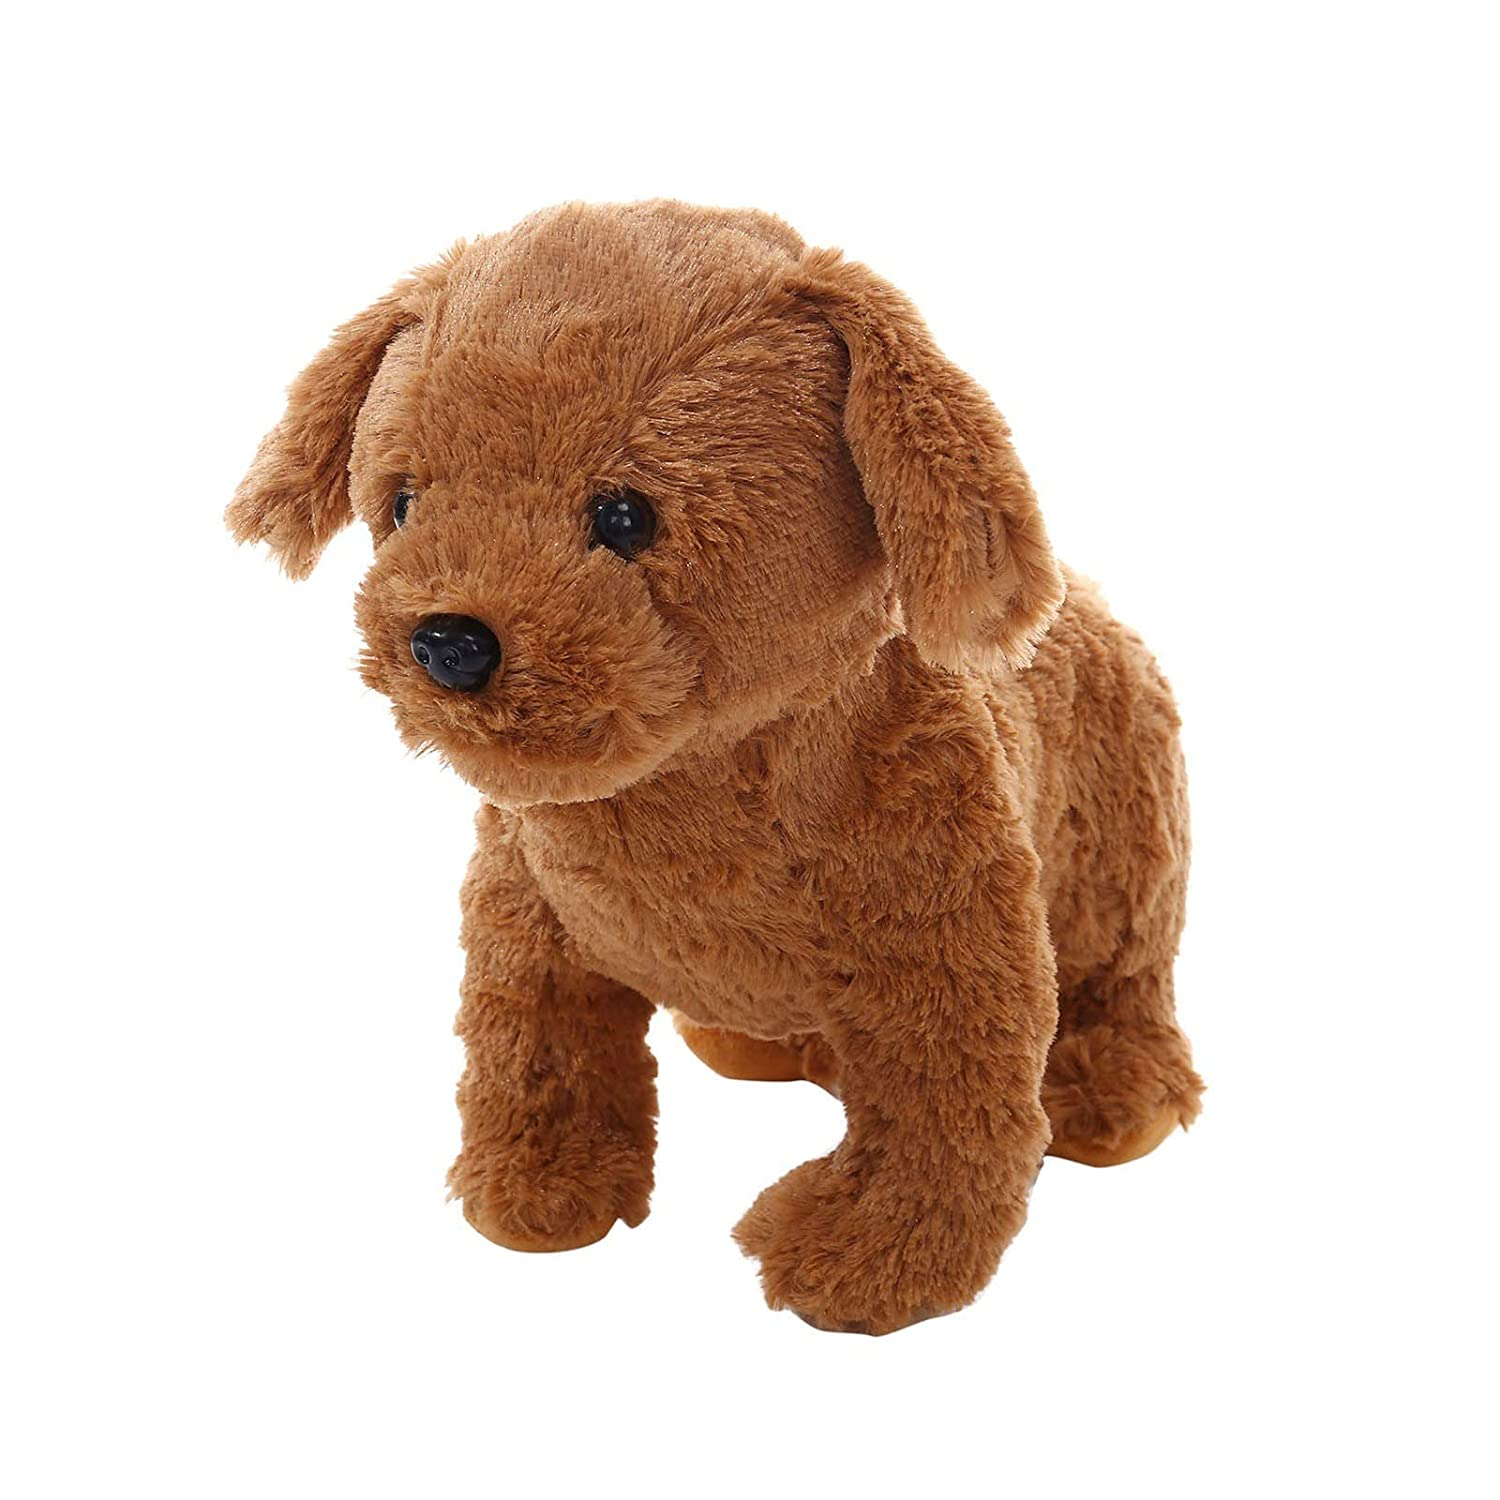 Charlasl Realistic Teddy Dog Lucky, Newest Handmade Realistic Figure Toy Dog Plush Stuffed Animal Puppy Toys Plush Doll, Lifelike Stuffed Interactive Pet Toy - Classic Gift for kids Teens Adults